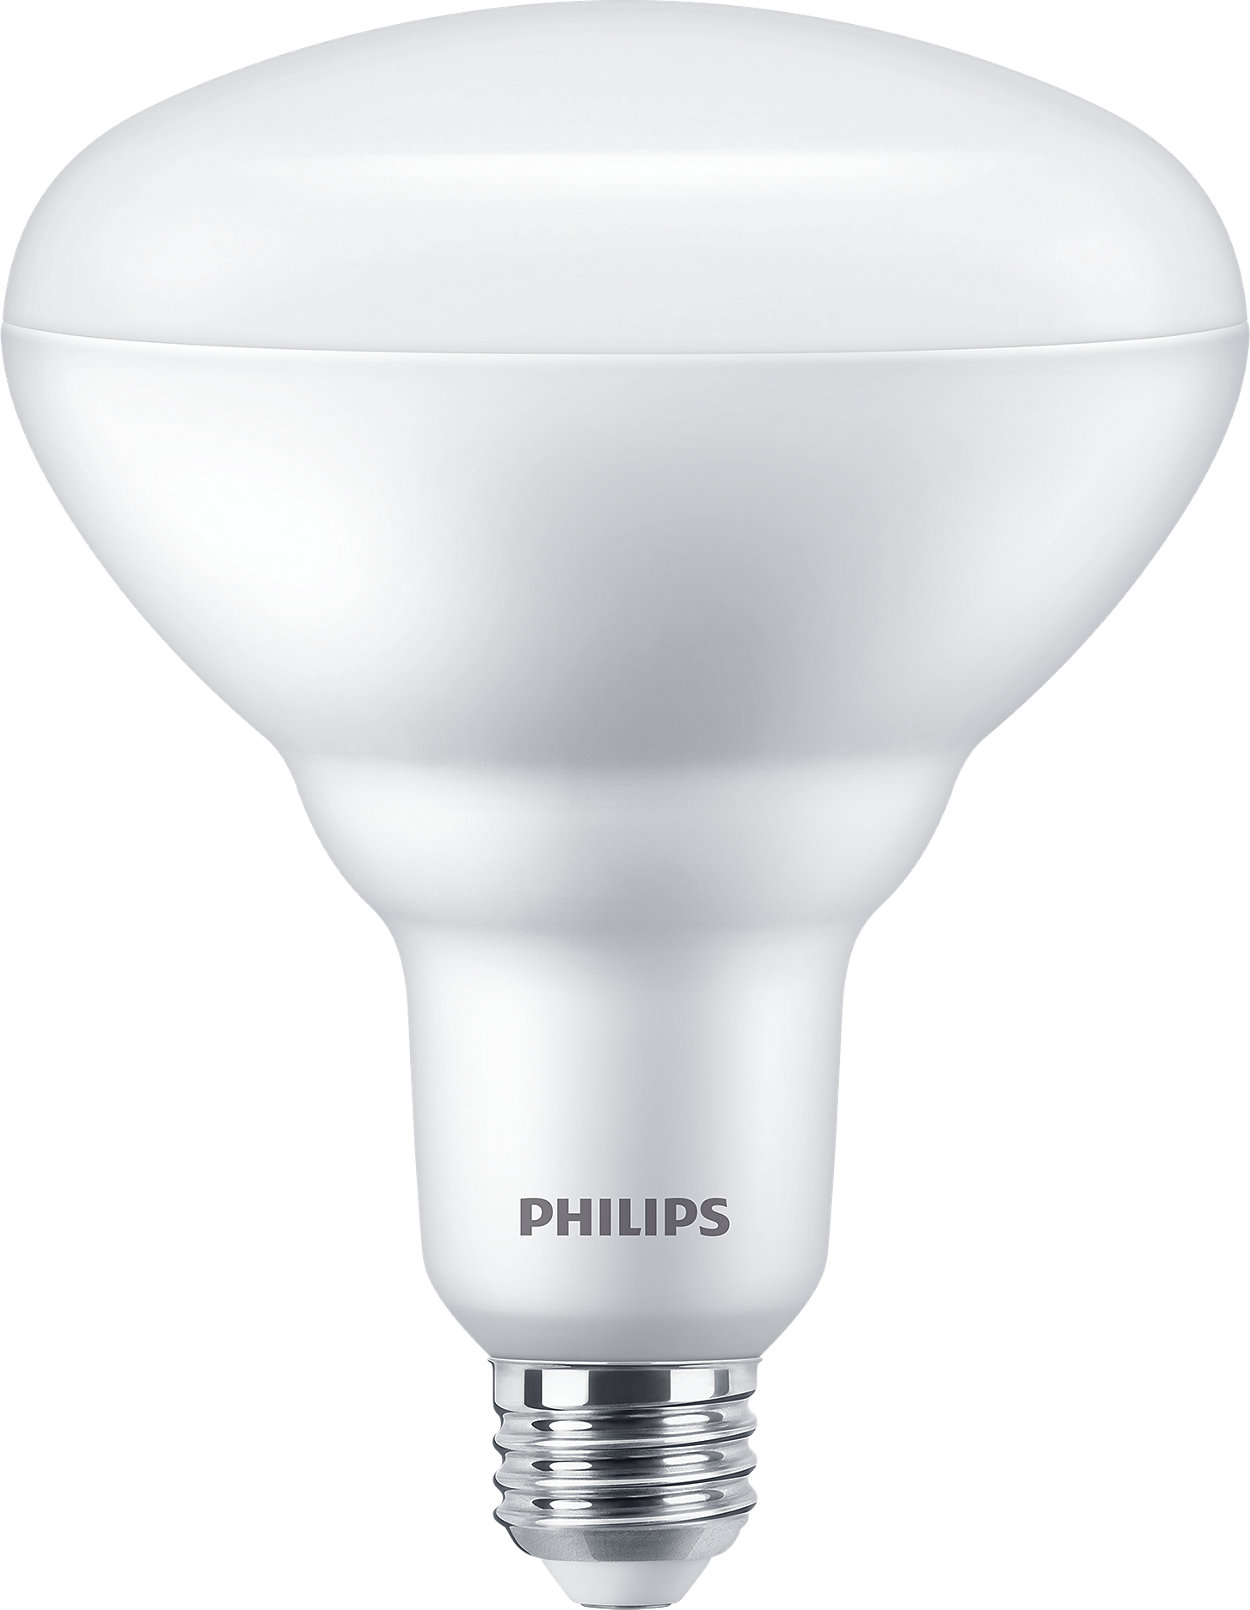 Attractive, dimmable, and afforadlble LED BR40 lamp solution